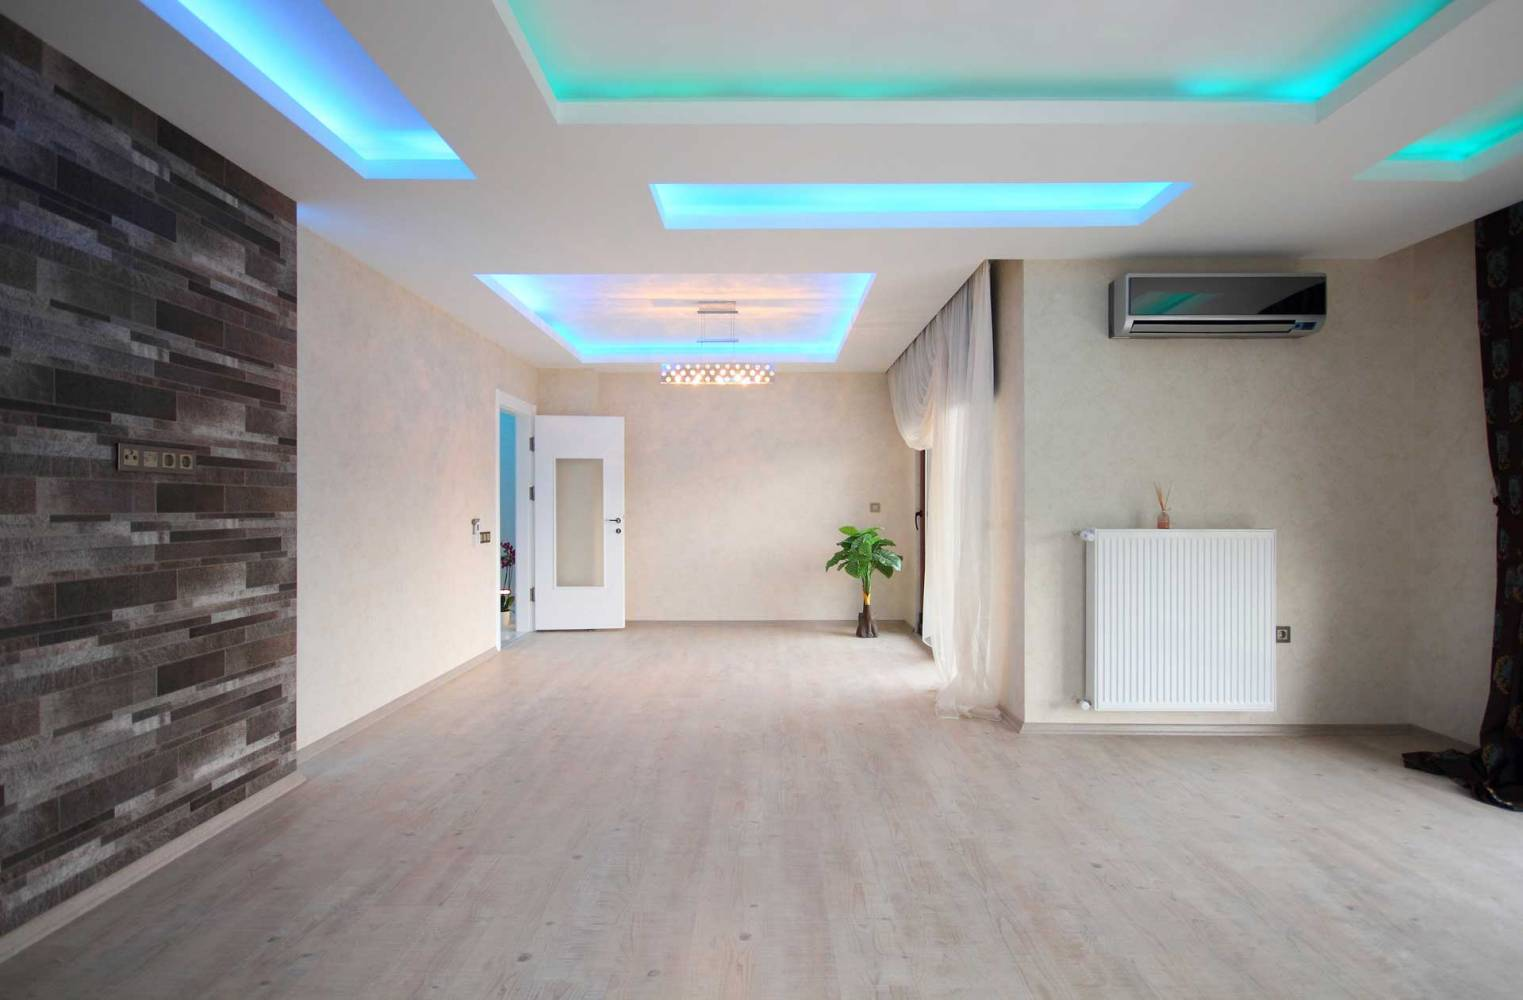 Image of LED Color Lighting System - Smart Lighting Installation